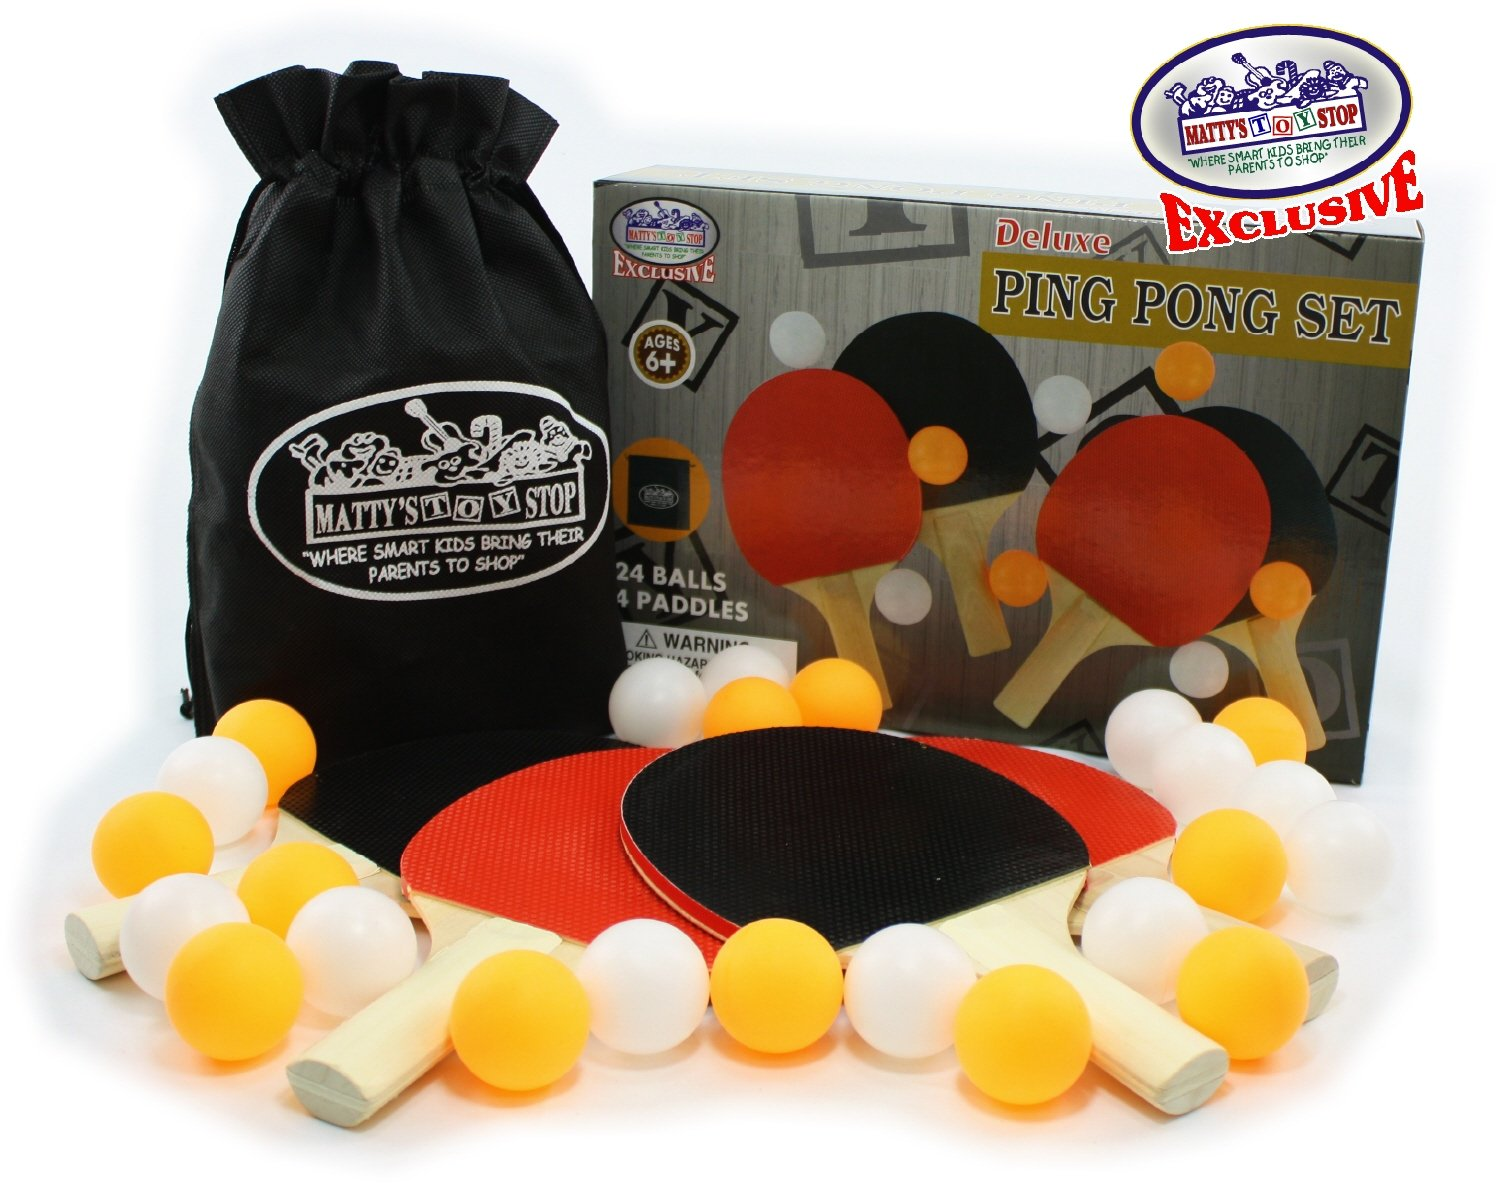 12 Orange /& 12 White 24 Balls Ping Pong Mattys Toy Stop Deluxe Table Tennis Refill Set with 4 Paddles /& Storage Bag Homeware